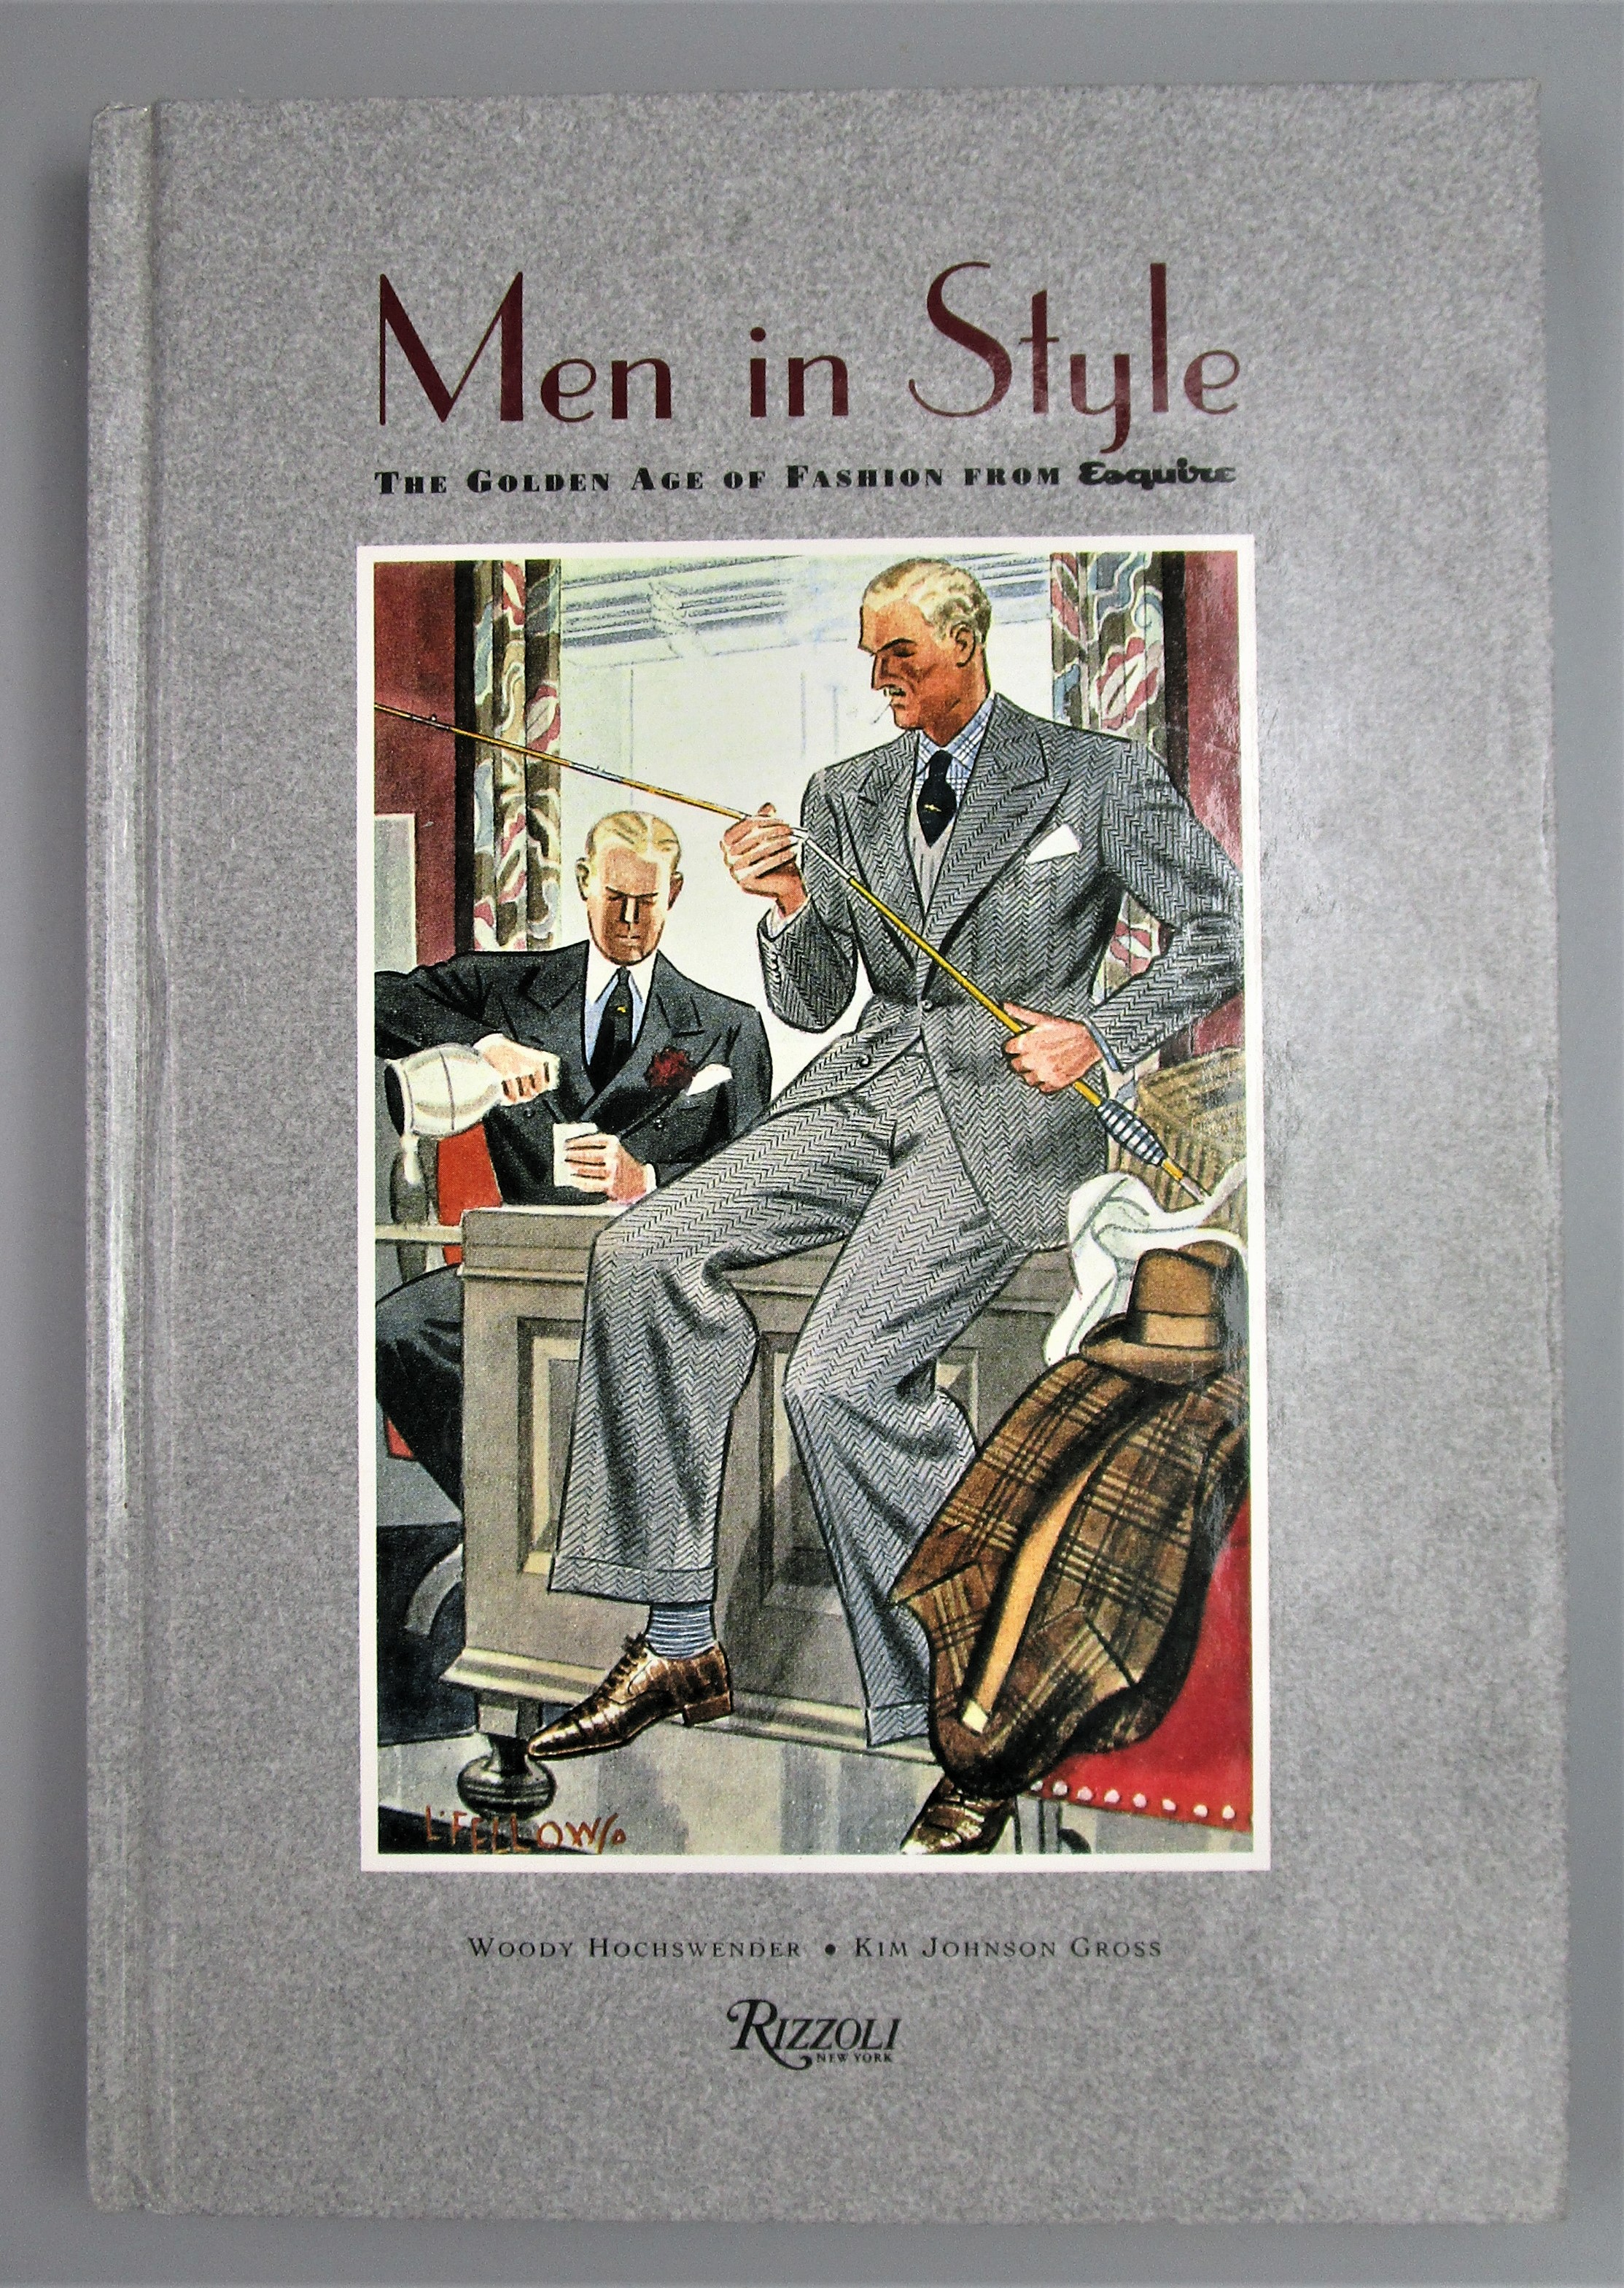 MEN IN STYLE: GOLDEN AGE OF FASHION FROM ESQUIRE, by Woody Hochswender - 1993